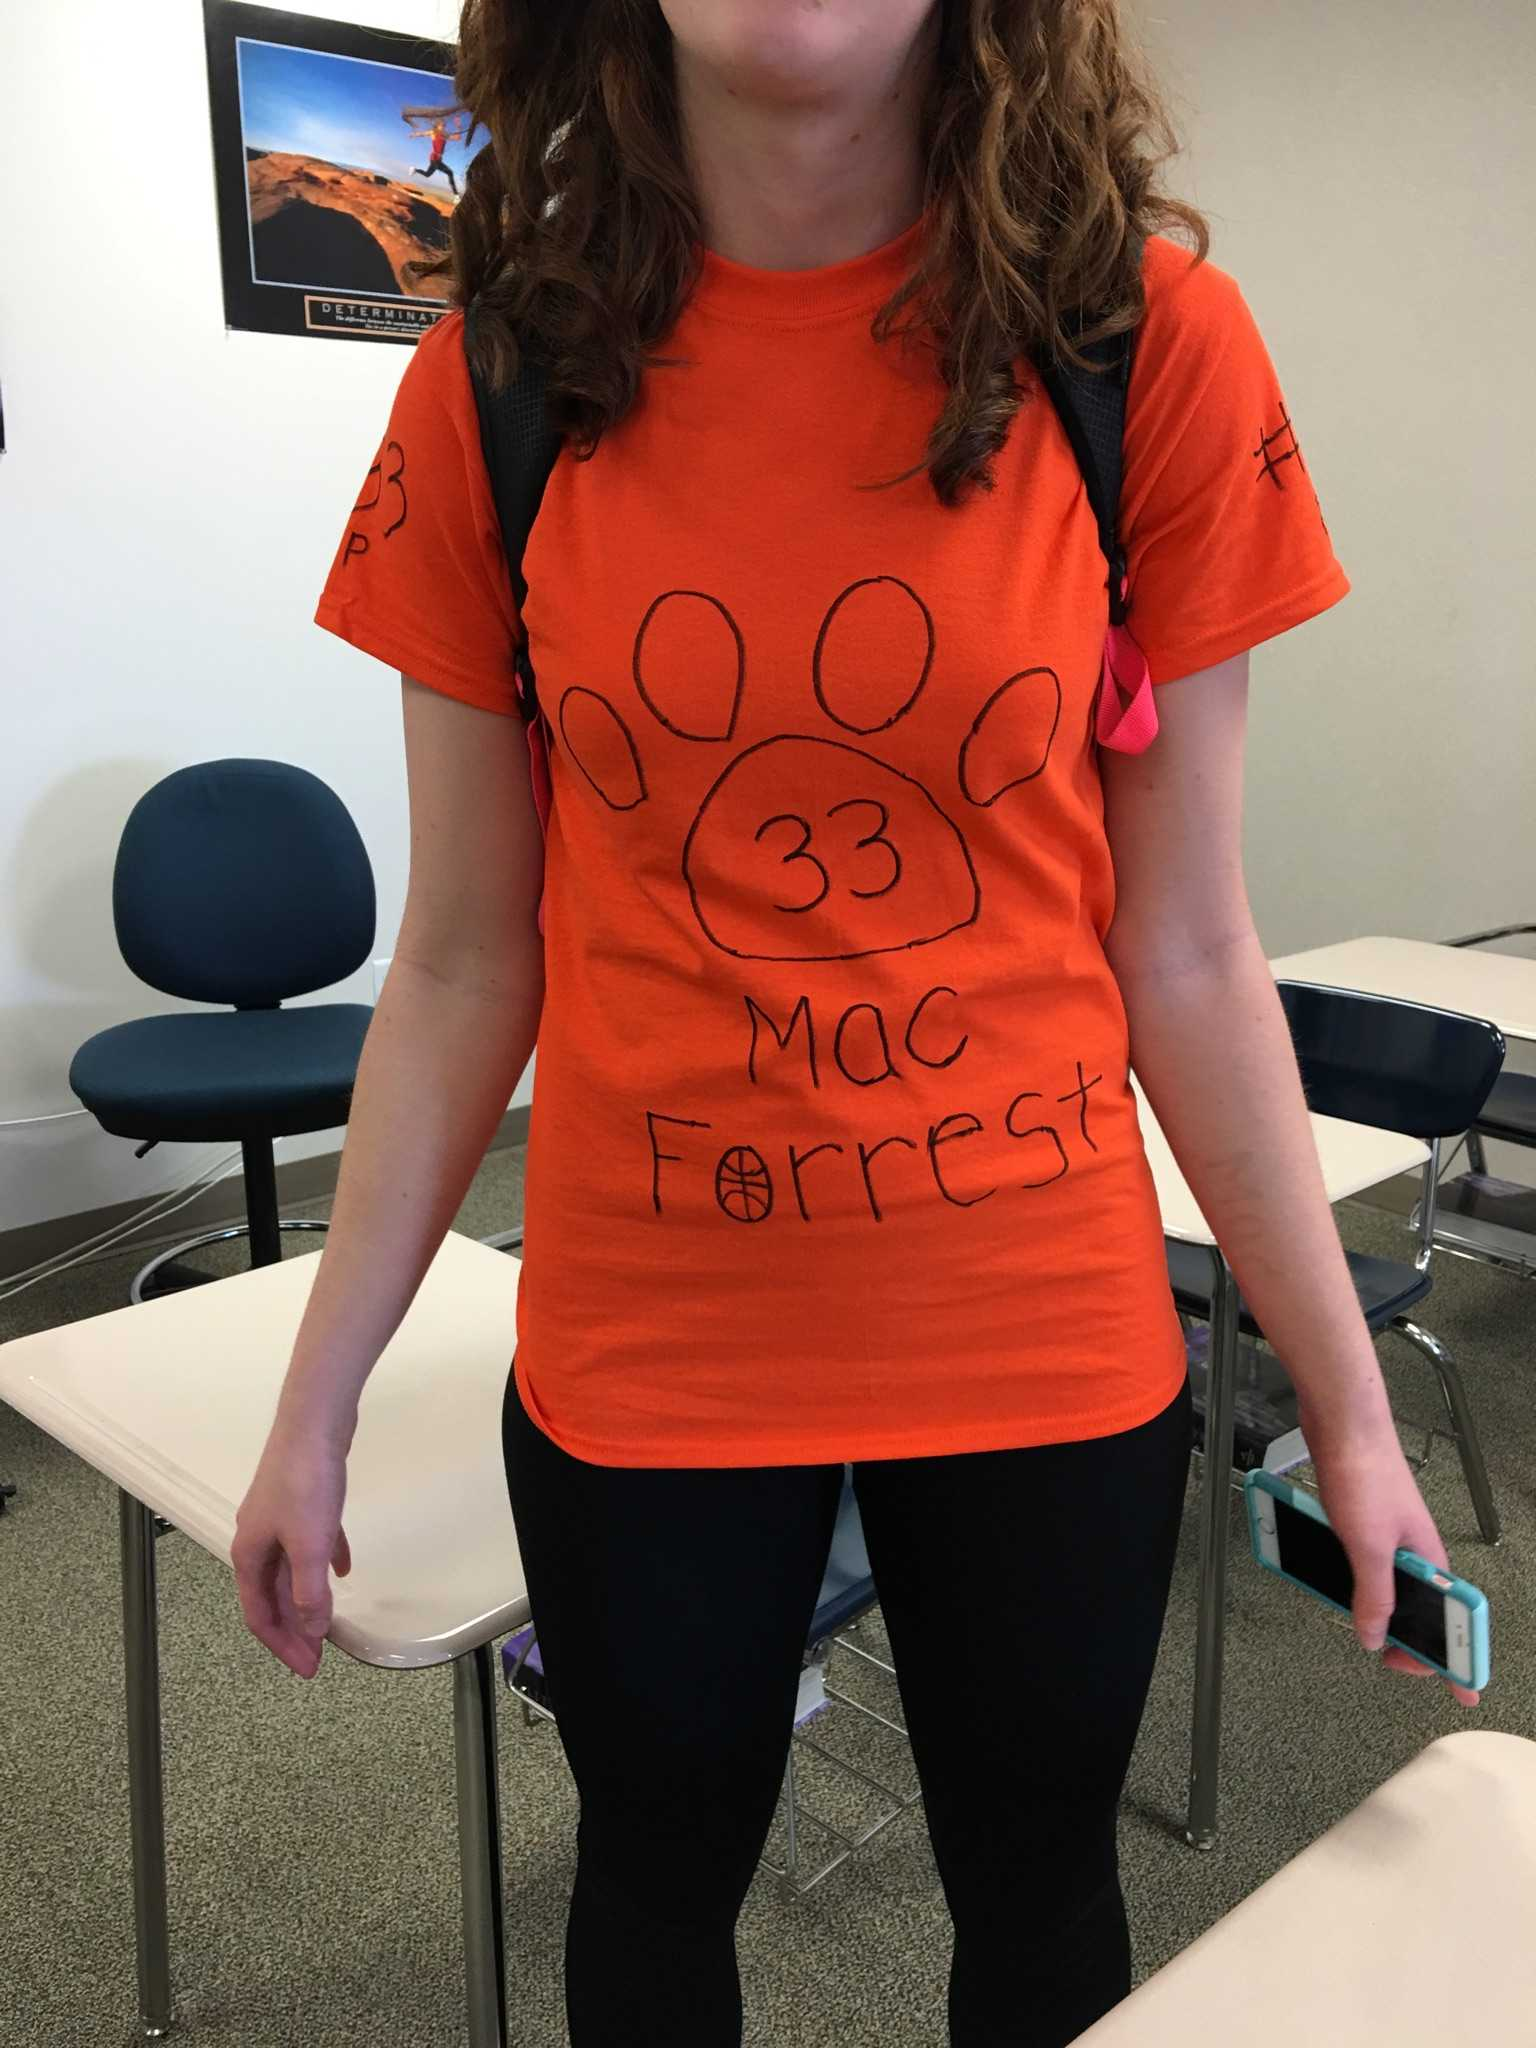 Hannah Weber wears her Lakewood colors to show her respect towards Mac.